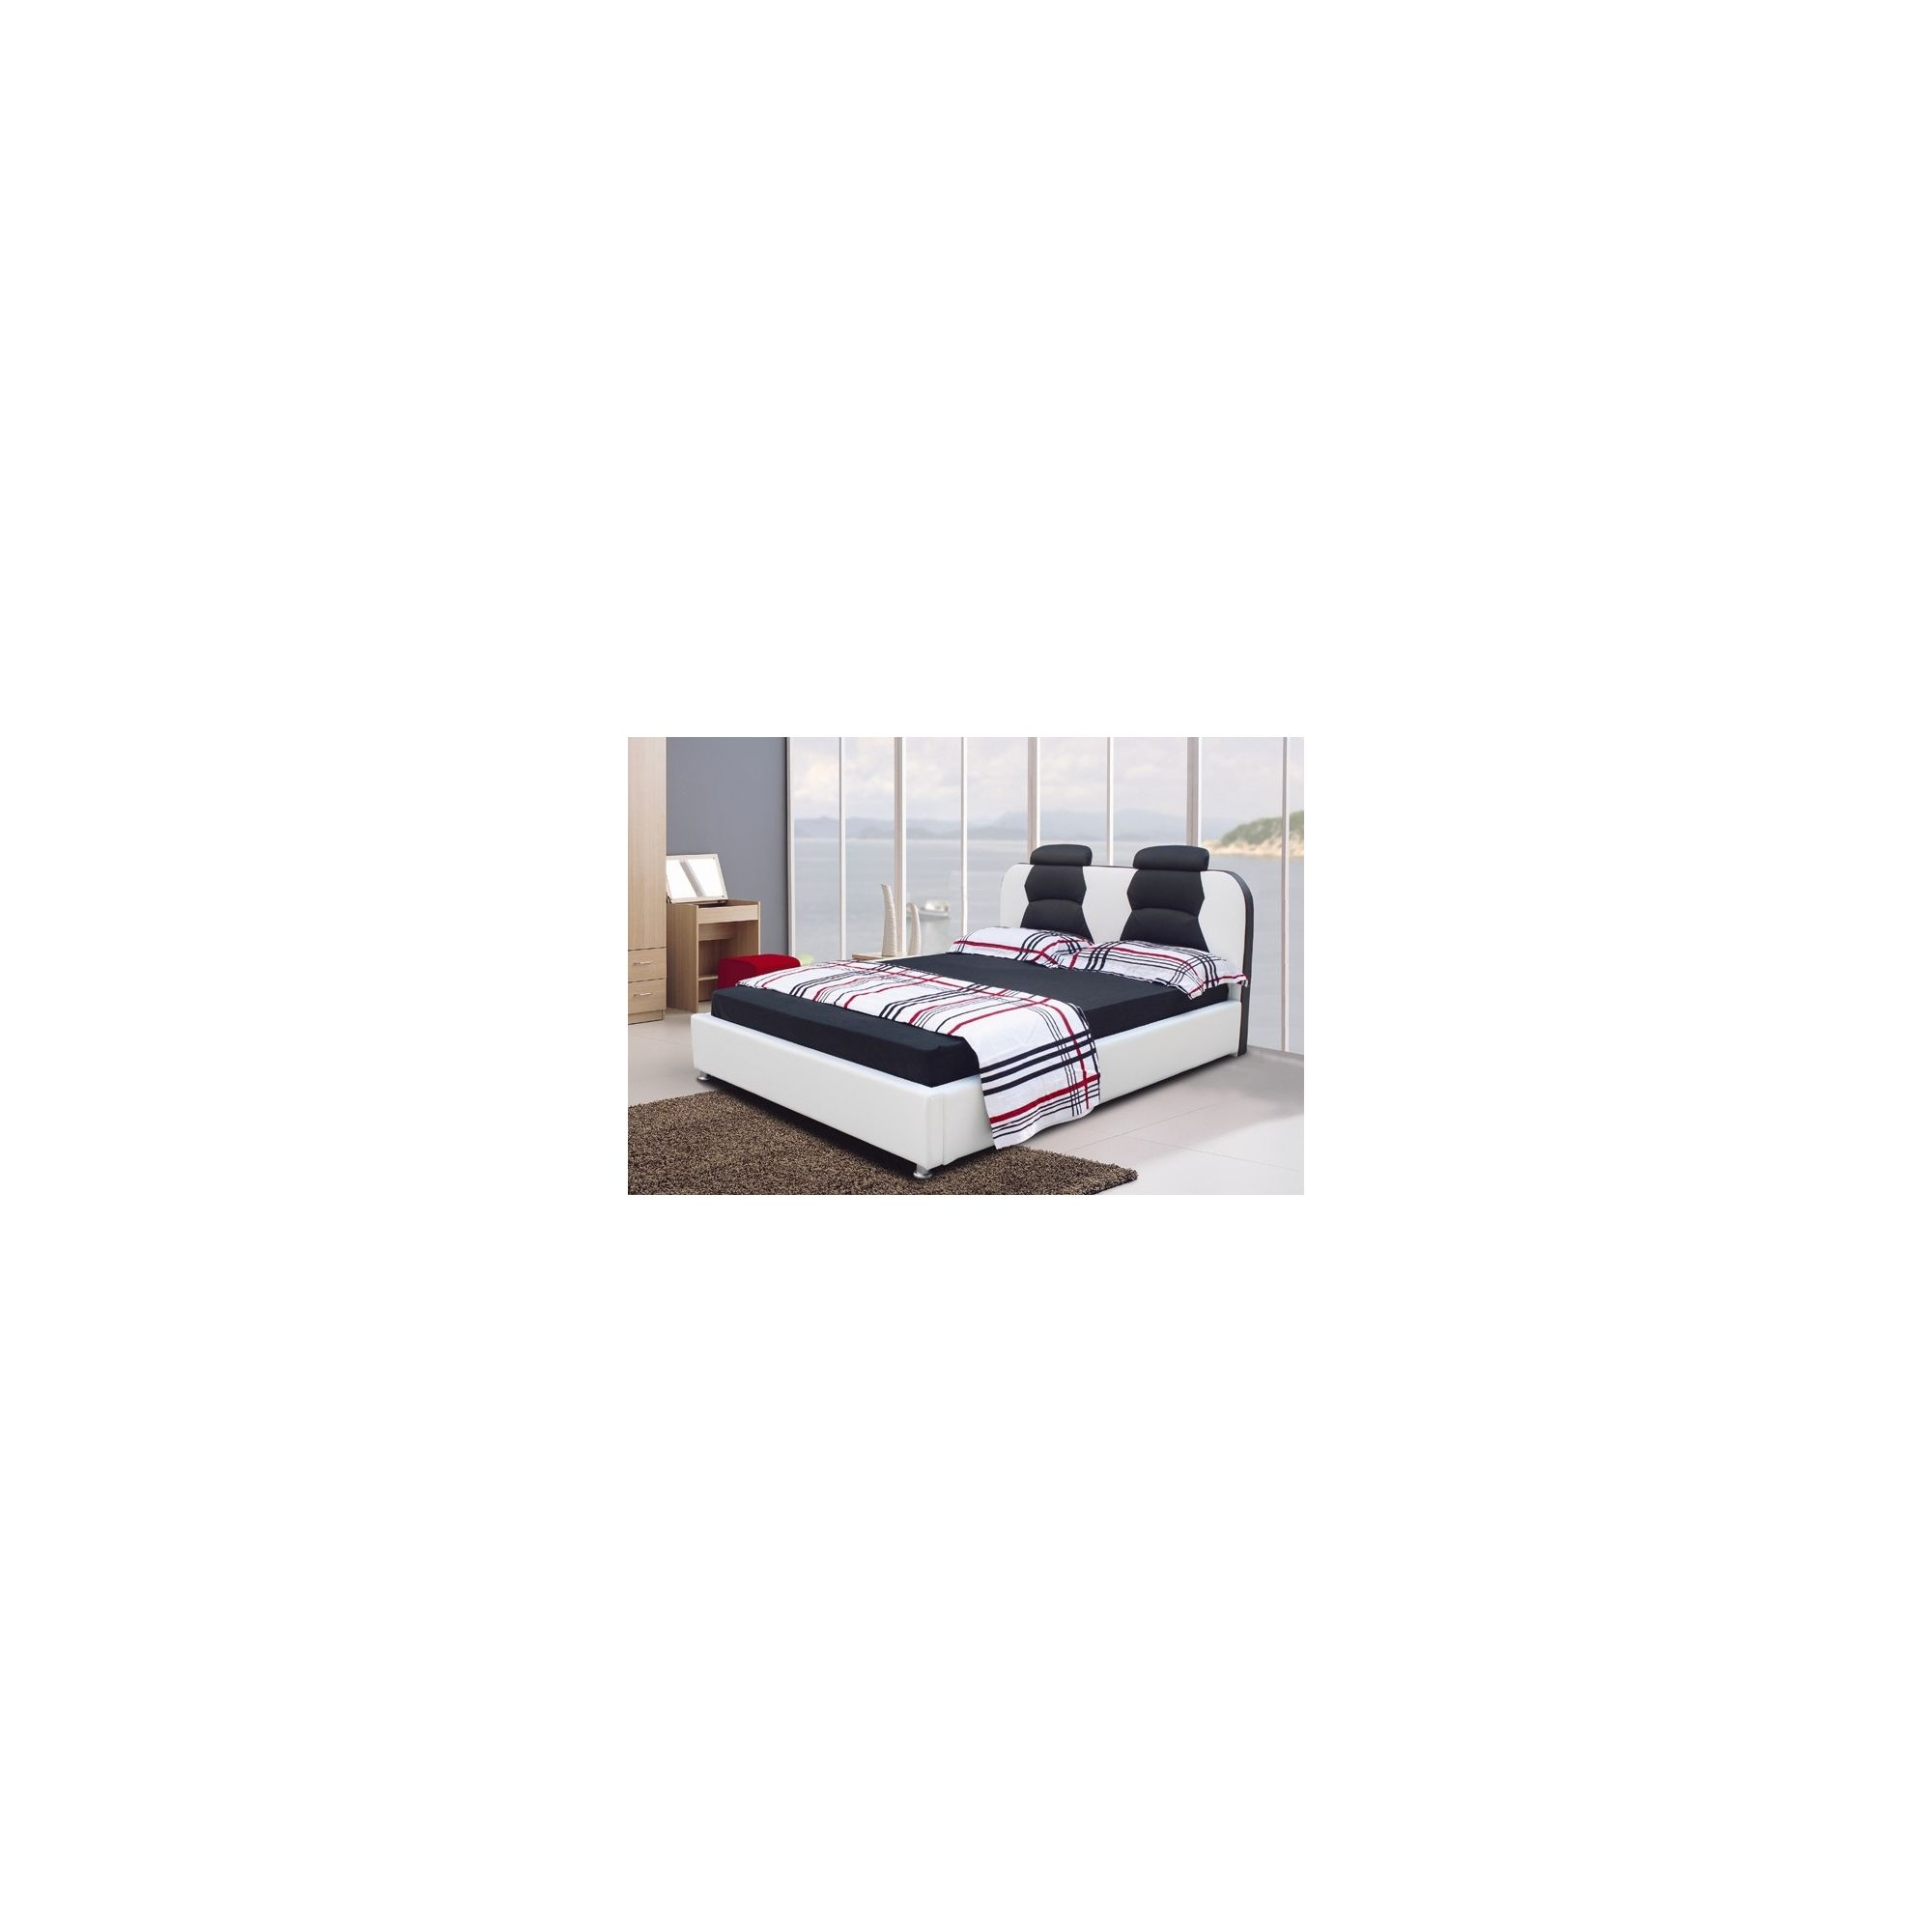 Giomani Designs Designer Double Bed - White / Black at Tesco Direct